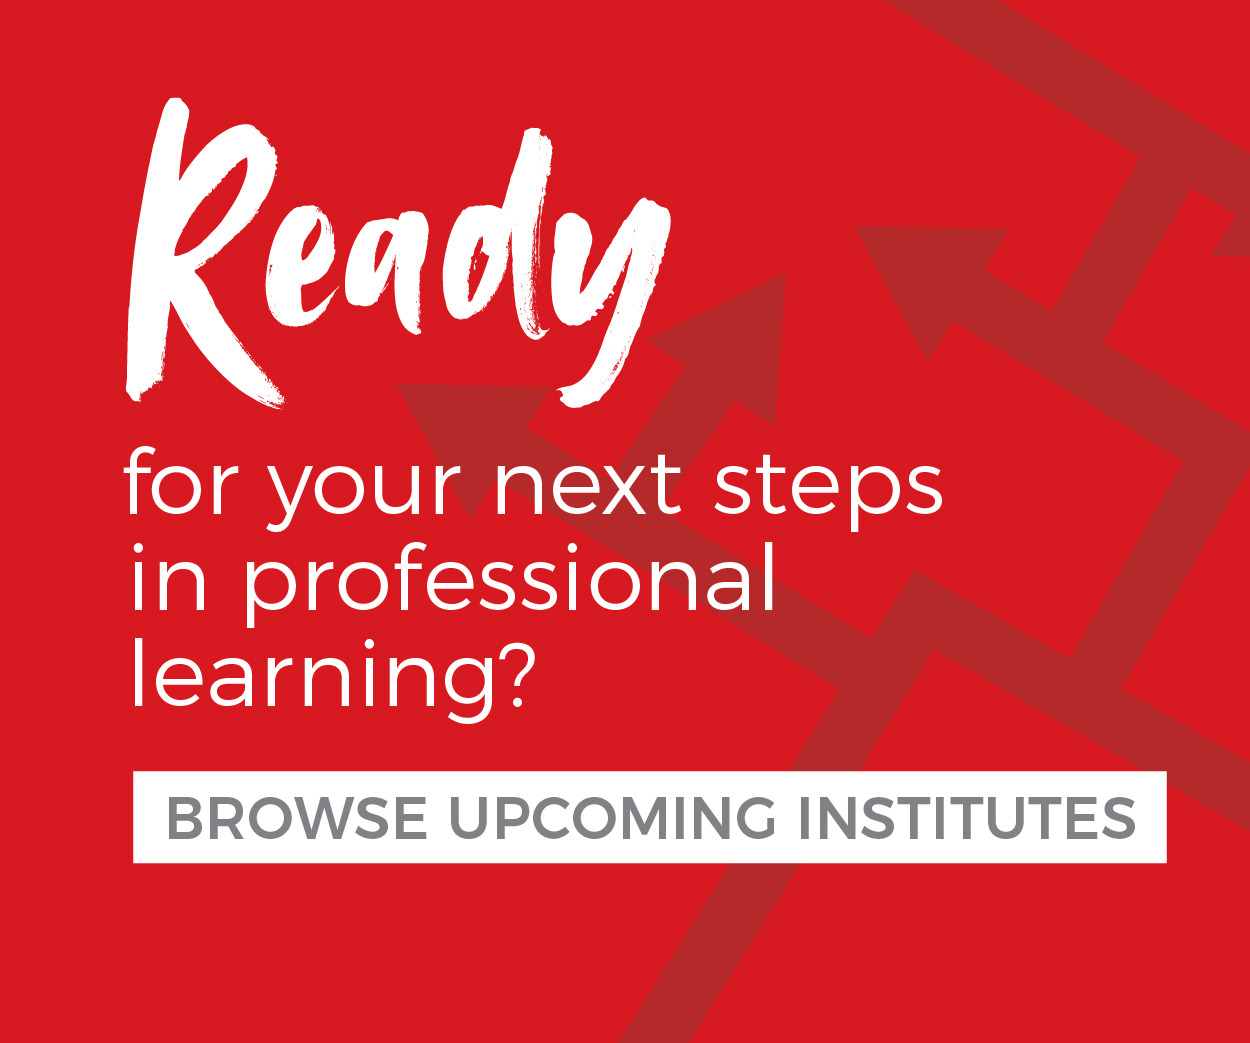 Ready to take the next step in professional learning? Browse upcoming institutes